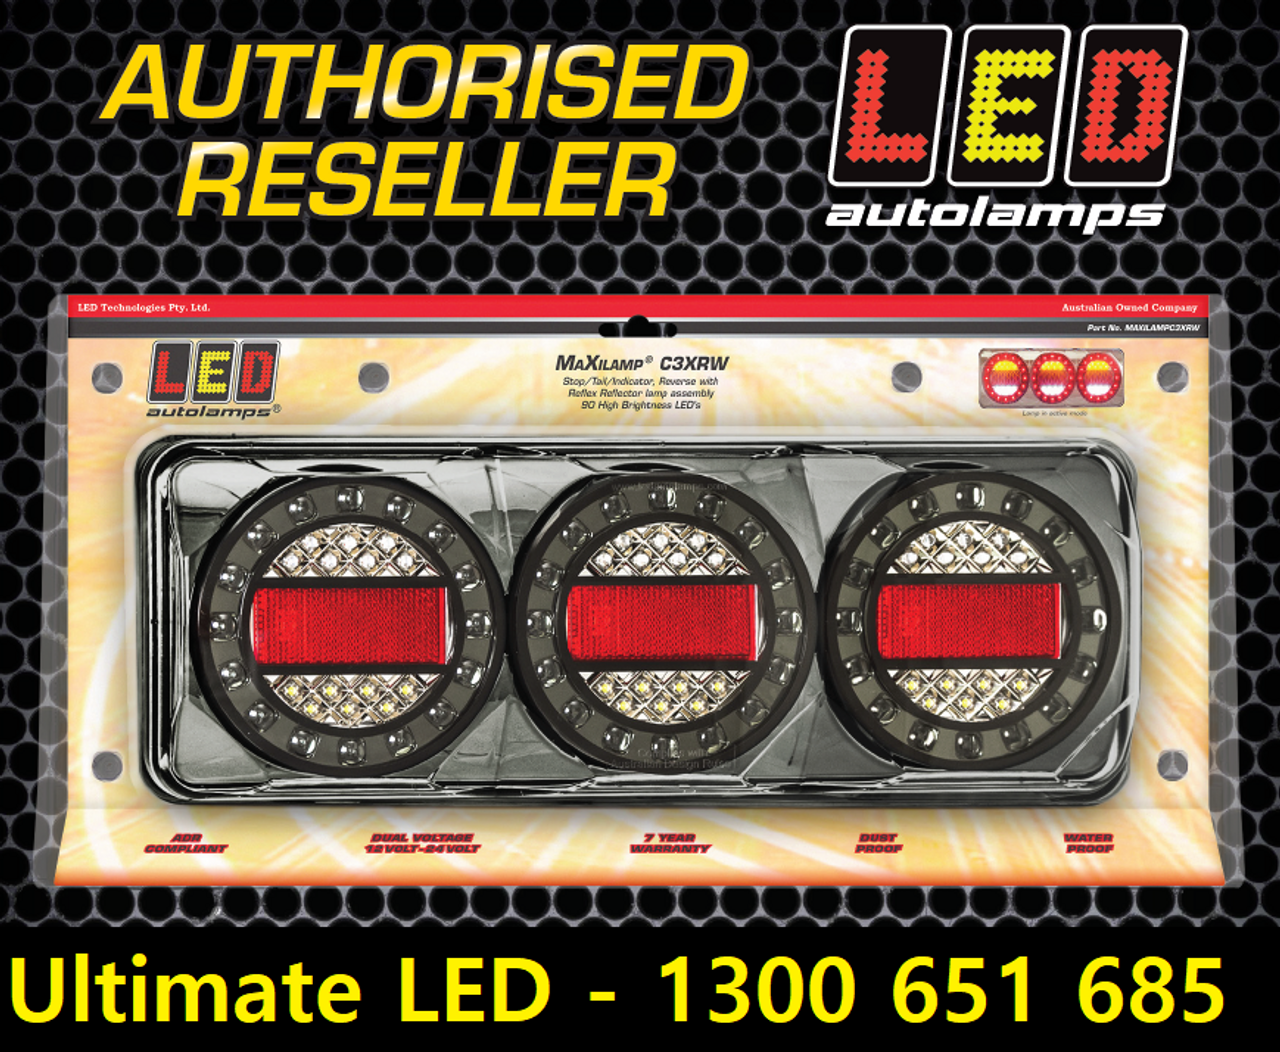 Genuine Maxilamp Combination Tail Light. Medium Tray & Truck Series Light. Diffused Tail Function. Sequential Indicator. Clear Lens. Stop, Tail, Indicator & Reverse Lights. Twin Pack. Multi-Volt. Autolamp. 38541ARWM-2. 7 Year Warranty